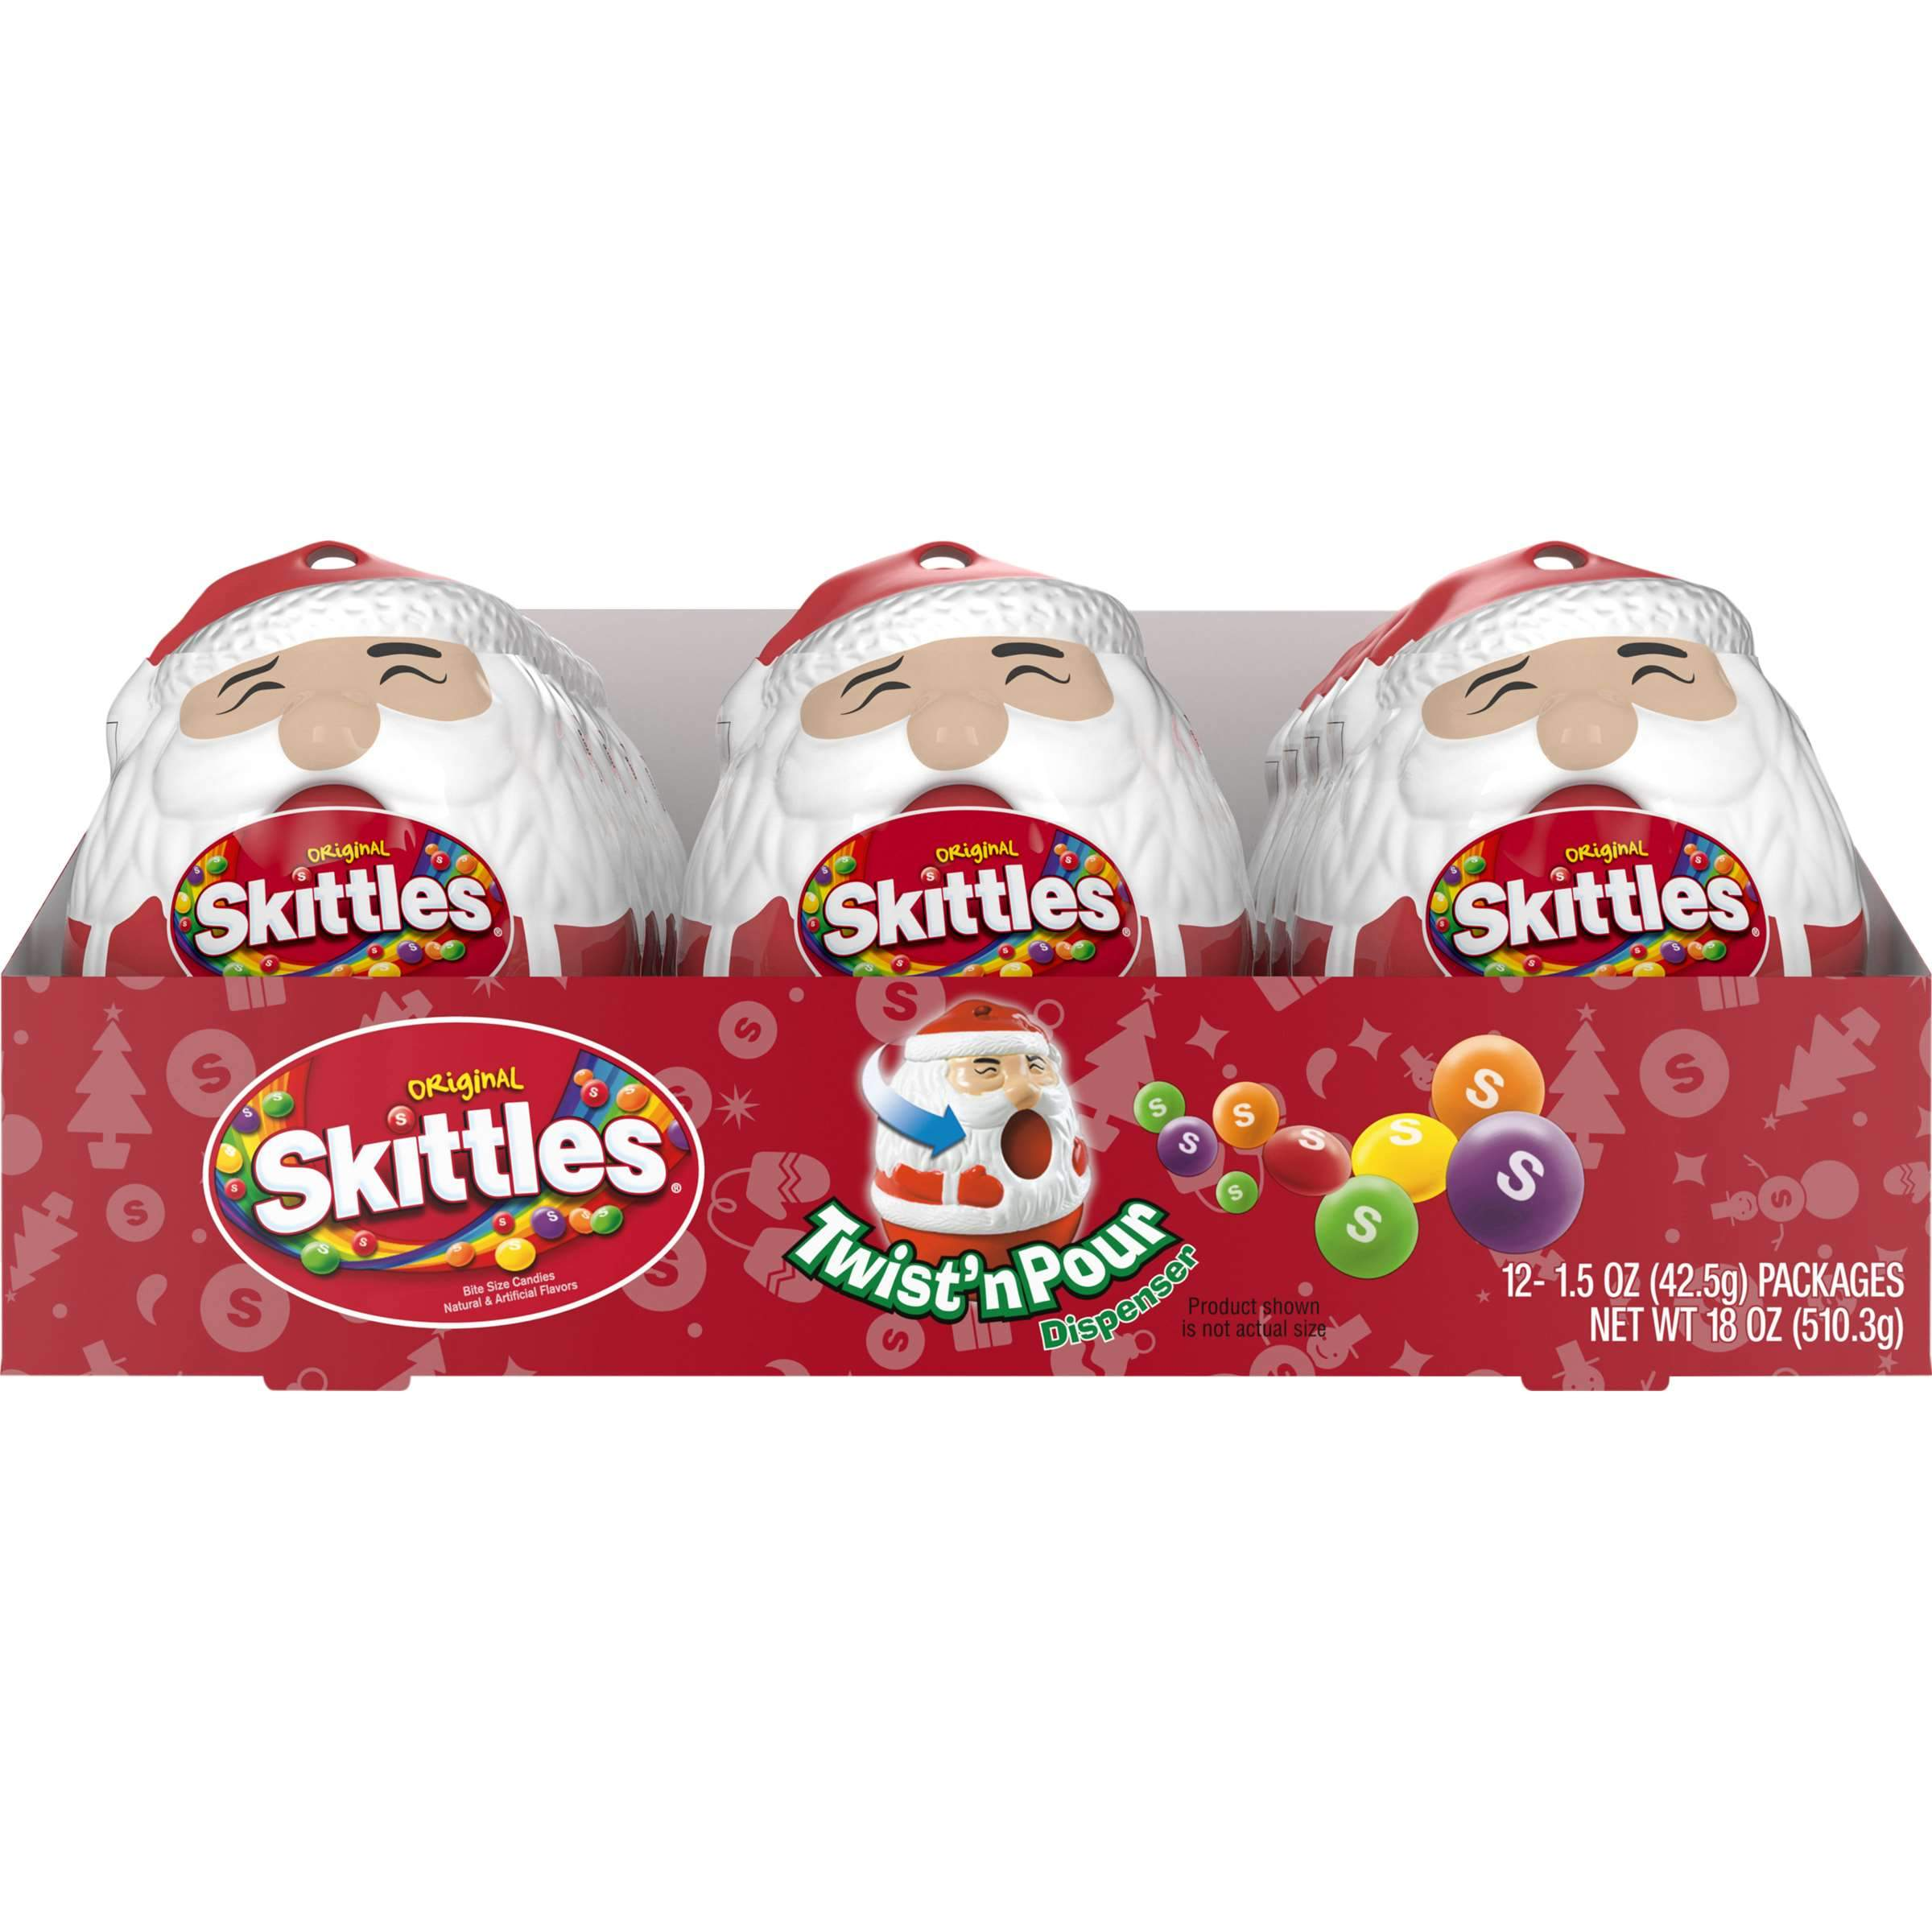 Skittle Holiday Skittles Twist & Pour - Original 1.5 Oz-12 Count